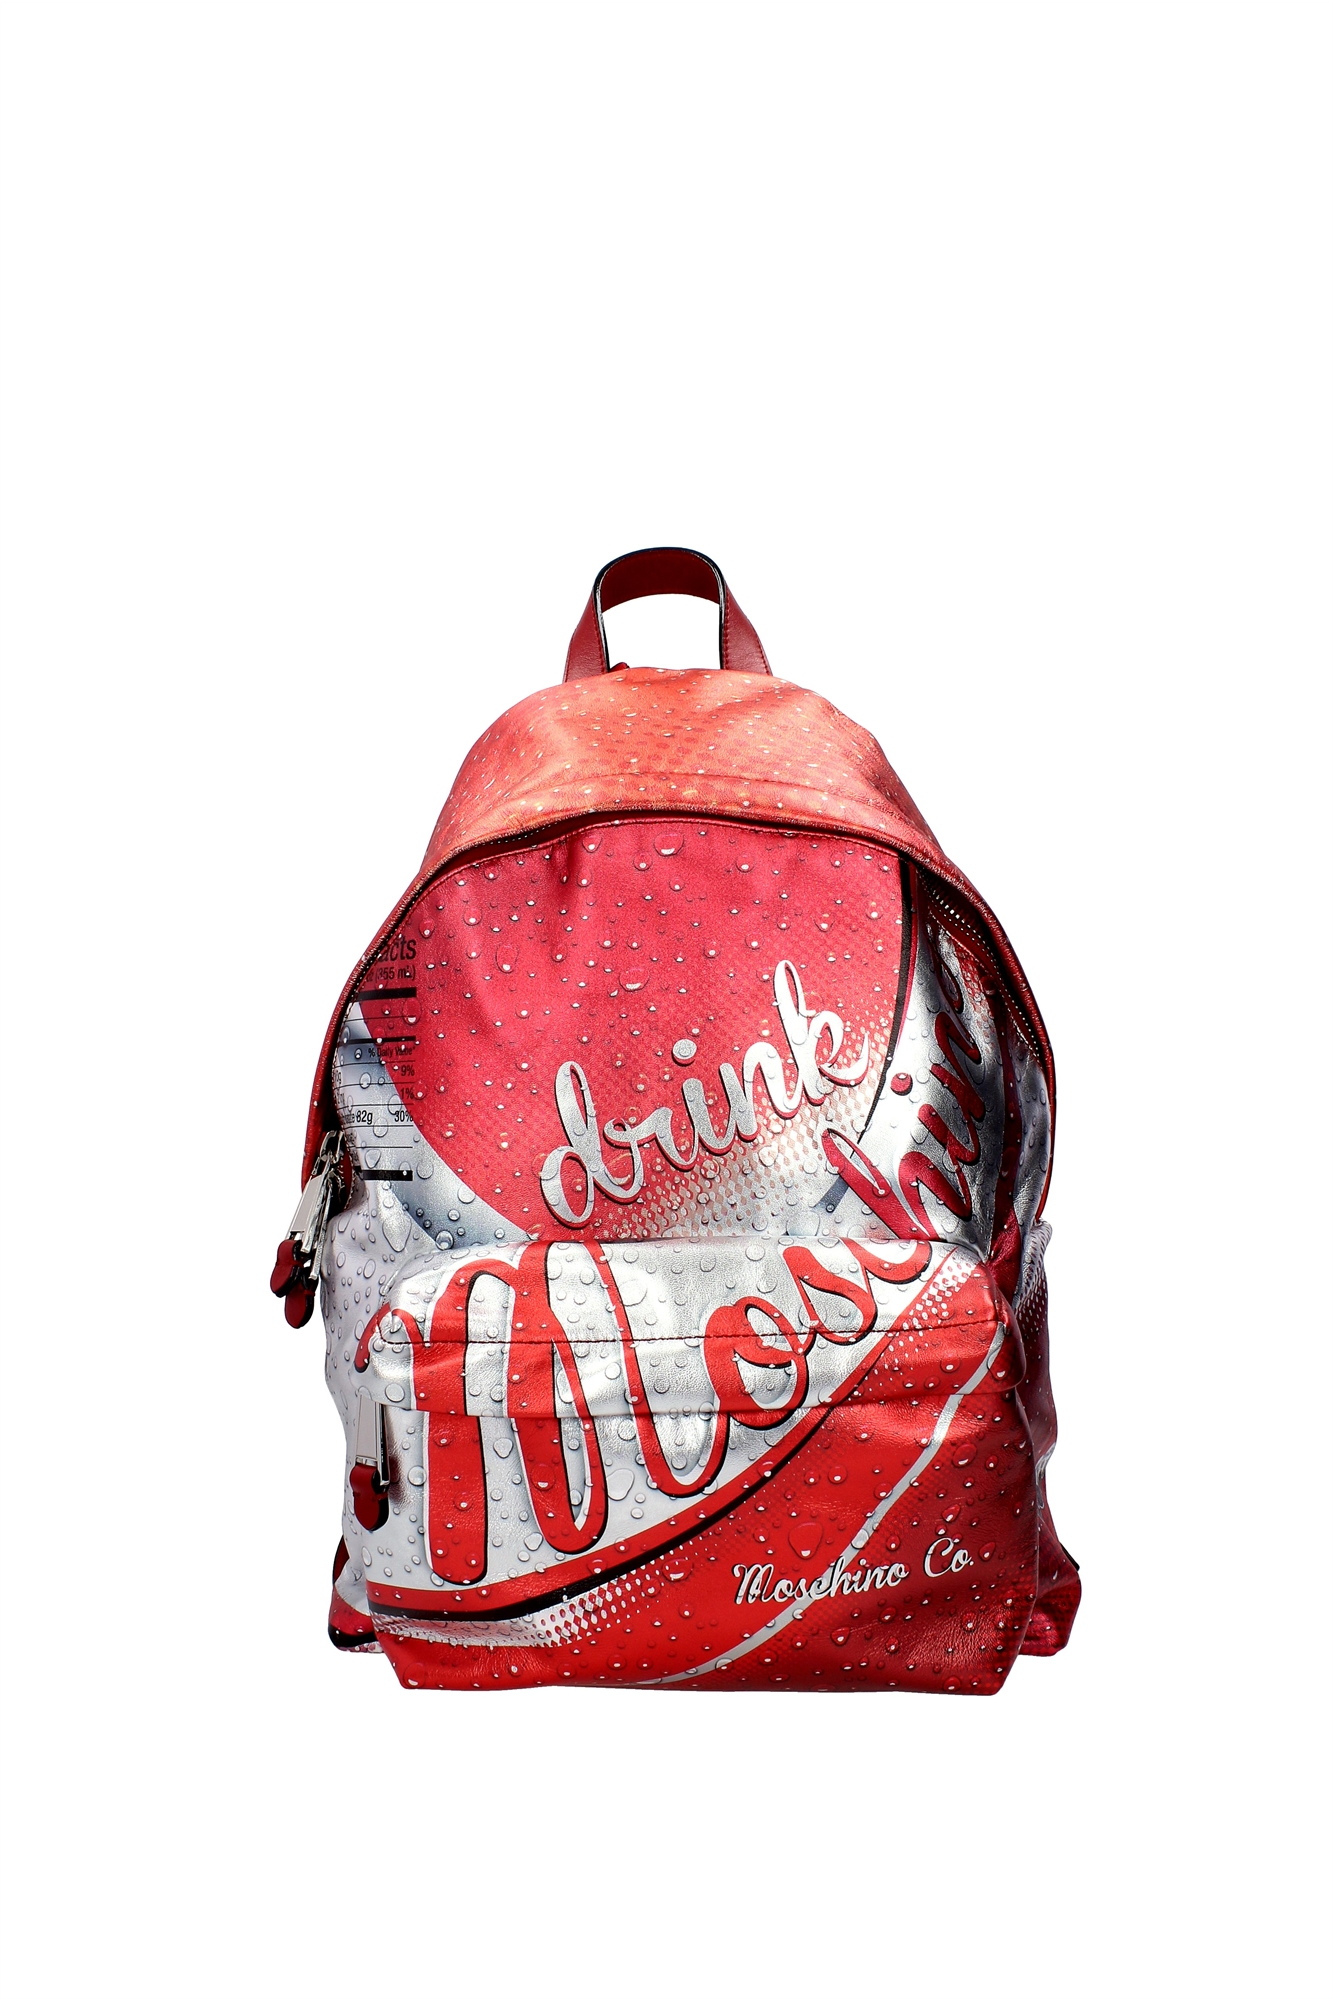 tasche rucksack moschino unisex leder rot 7a760680081112 ebay. Black Bedroom Furniture Sets. Home Design Ideas